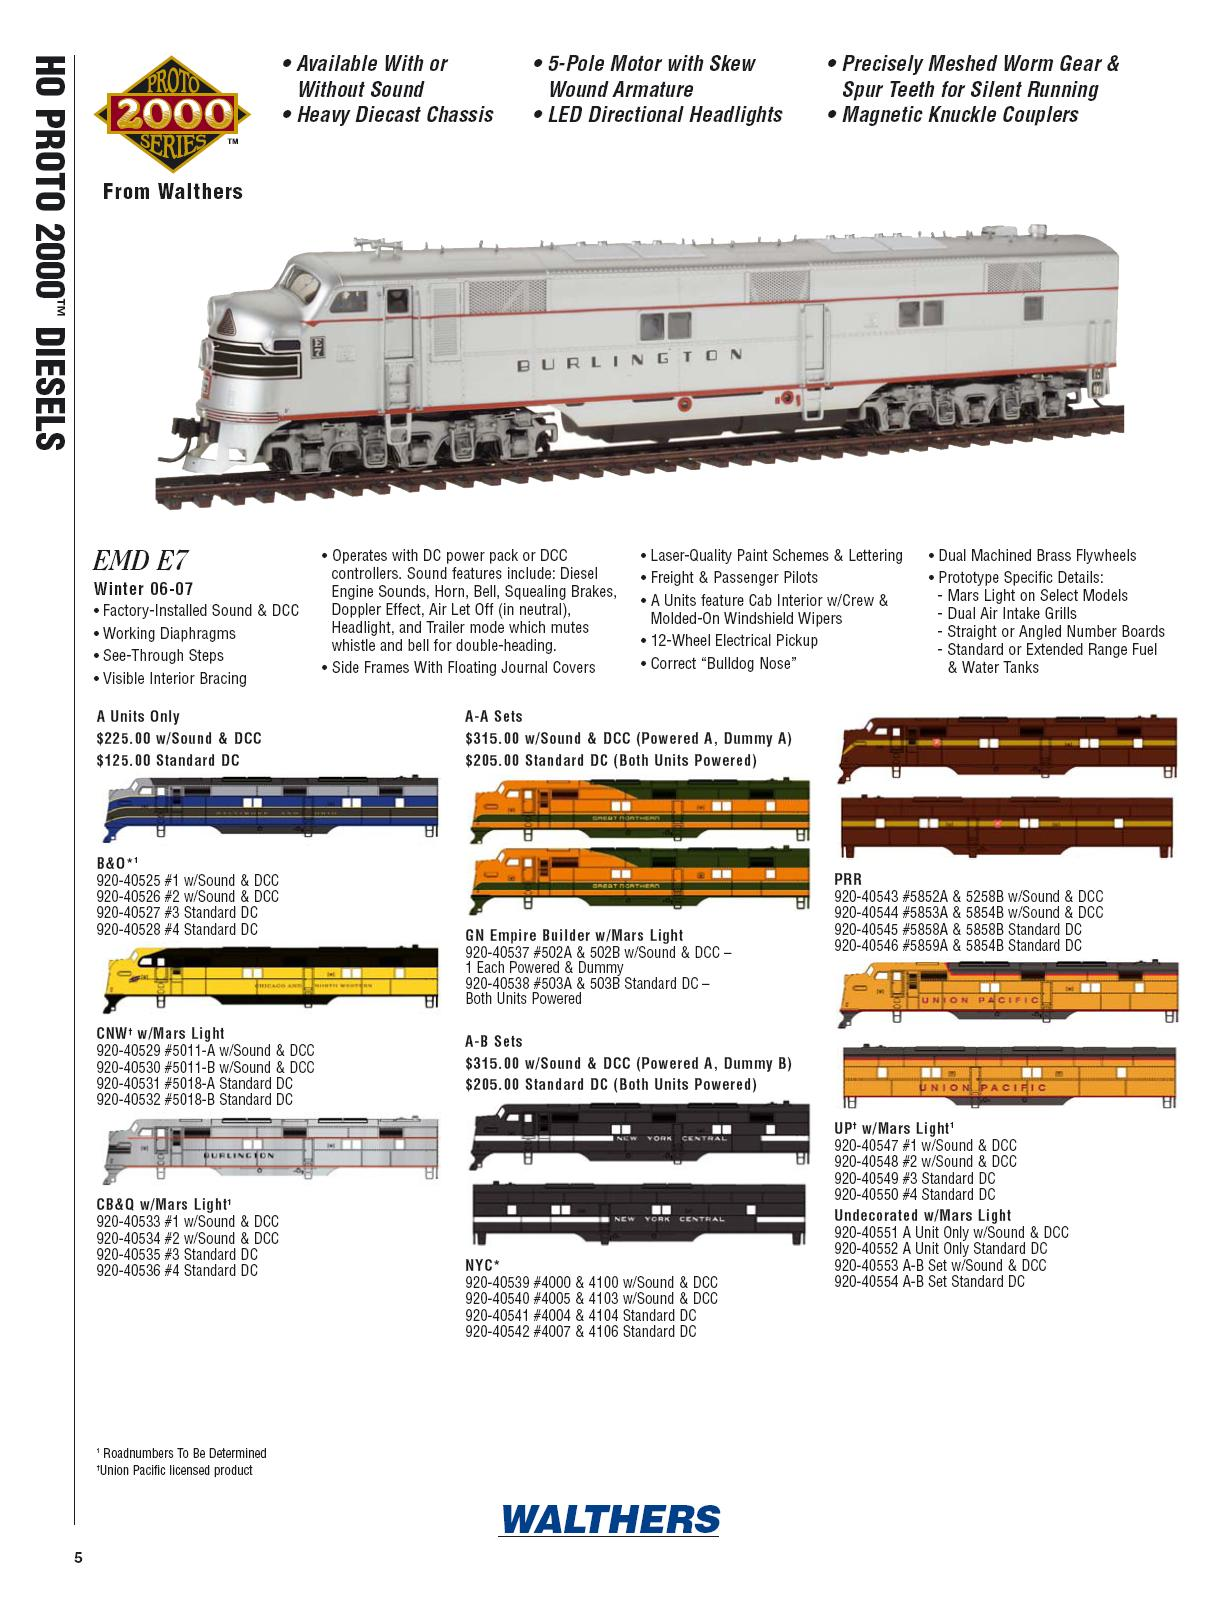 Walthers 2006 Cataloge Diesels page 2